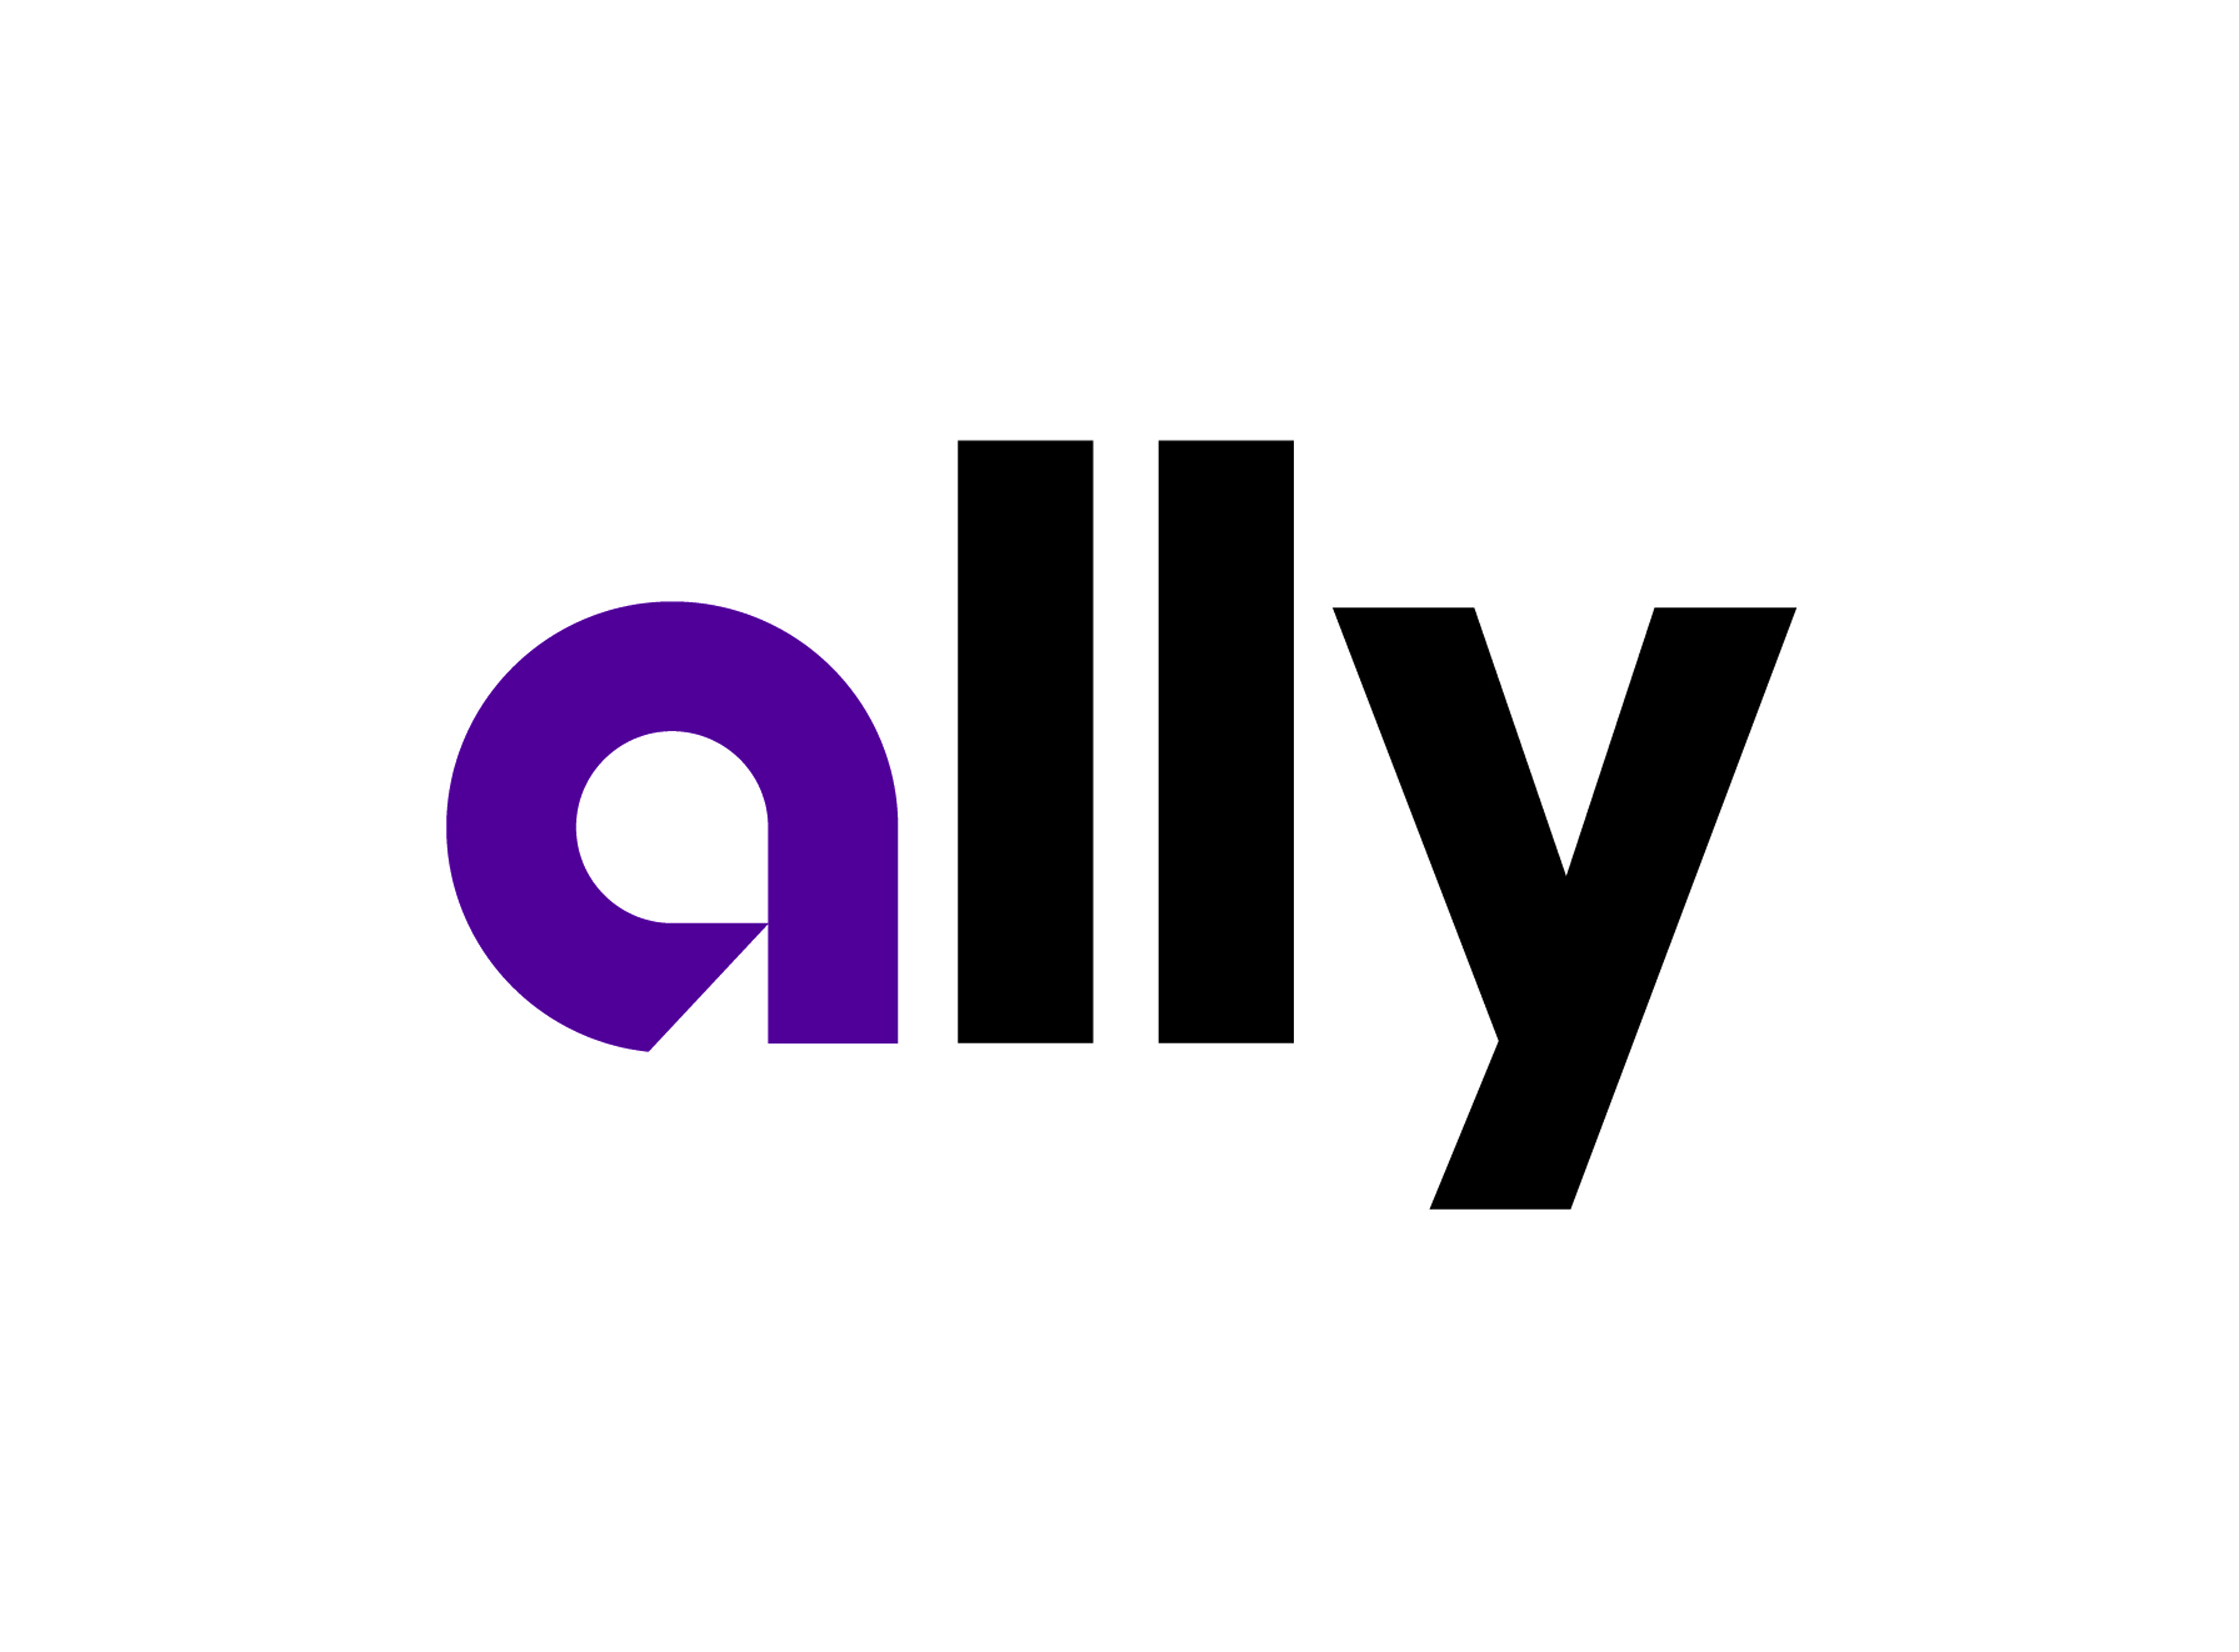 Ally Ranked First List of Top Auto Finance panies Digital Dealer